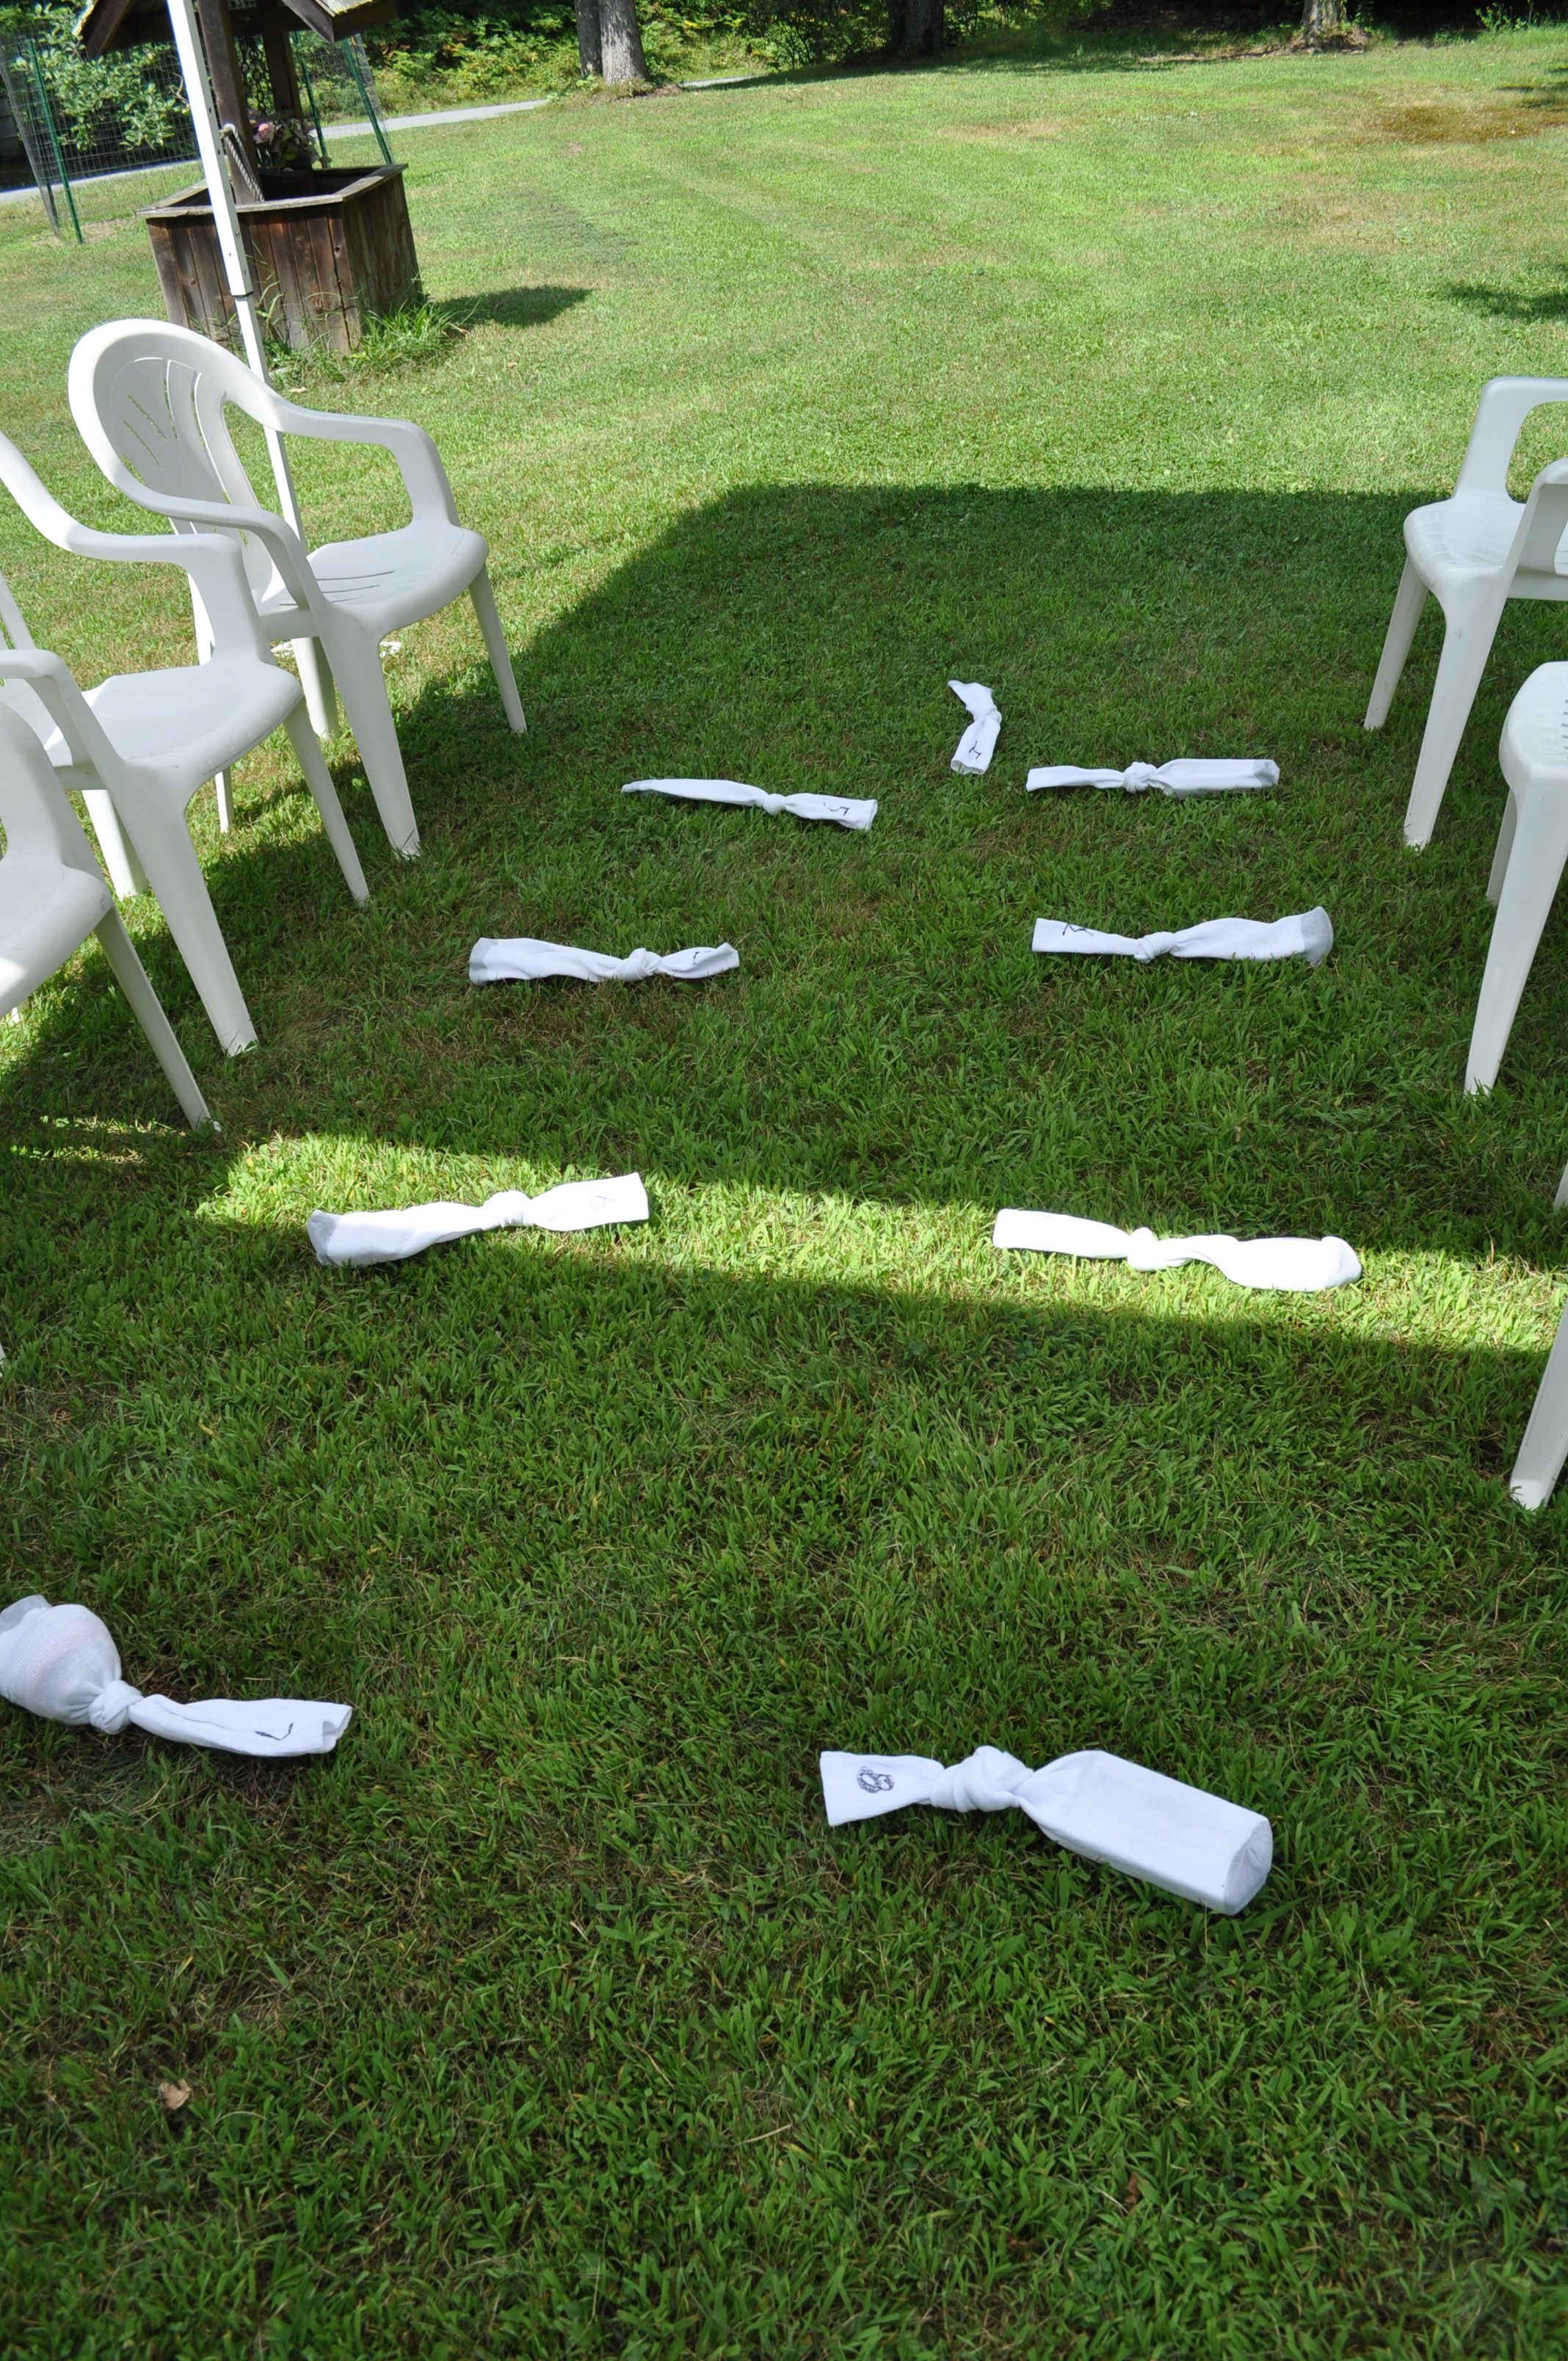 """Bridal Shower game: """"What's in the sock?"""" place items that the bride might need on her honeymoon in long socks and number them.  Guest can only touch socks with their feet to guess what's in the socks.  Person with the most correct answers wins.  Have bride to be open the socks to reveal what's inside :)"""